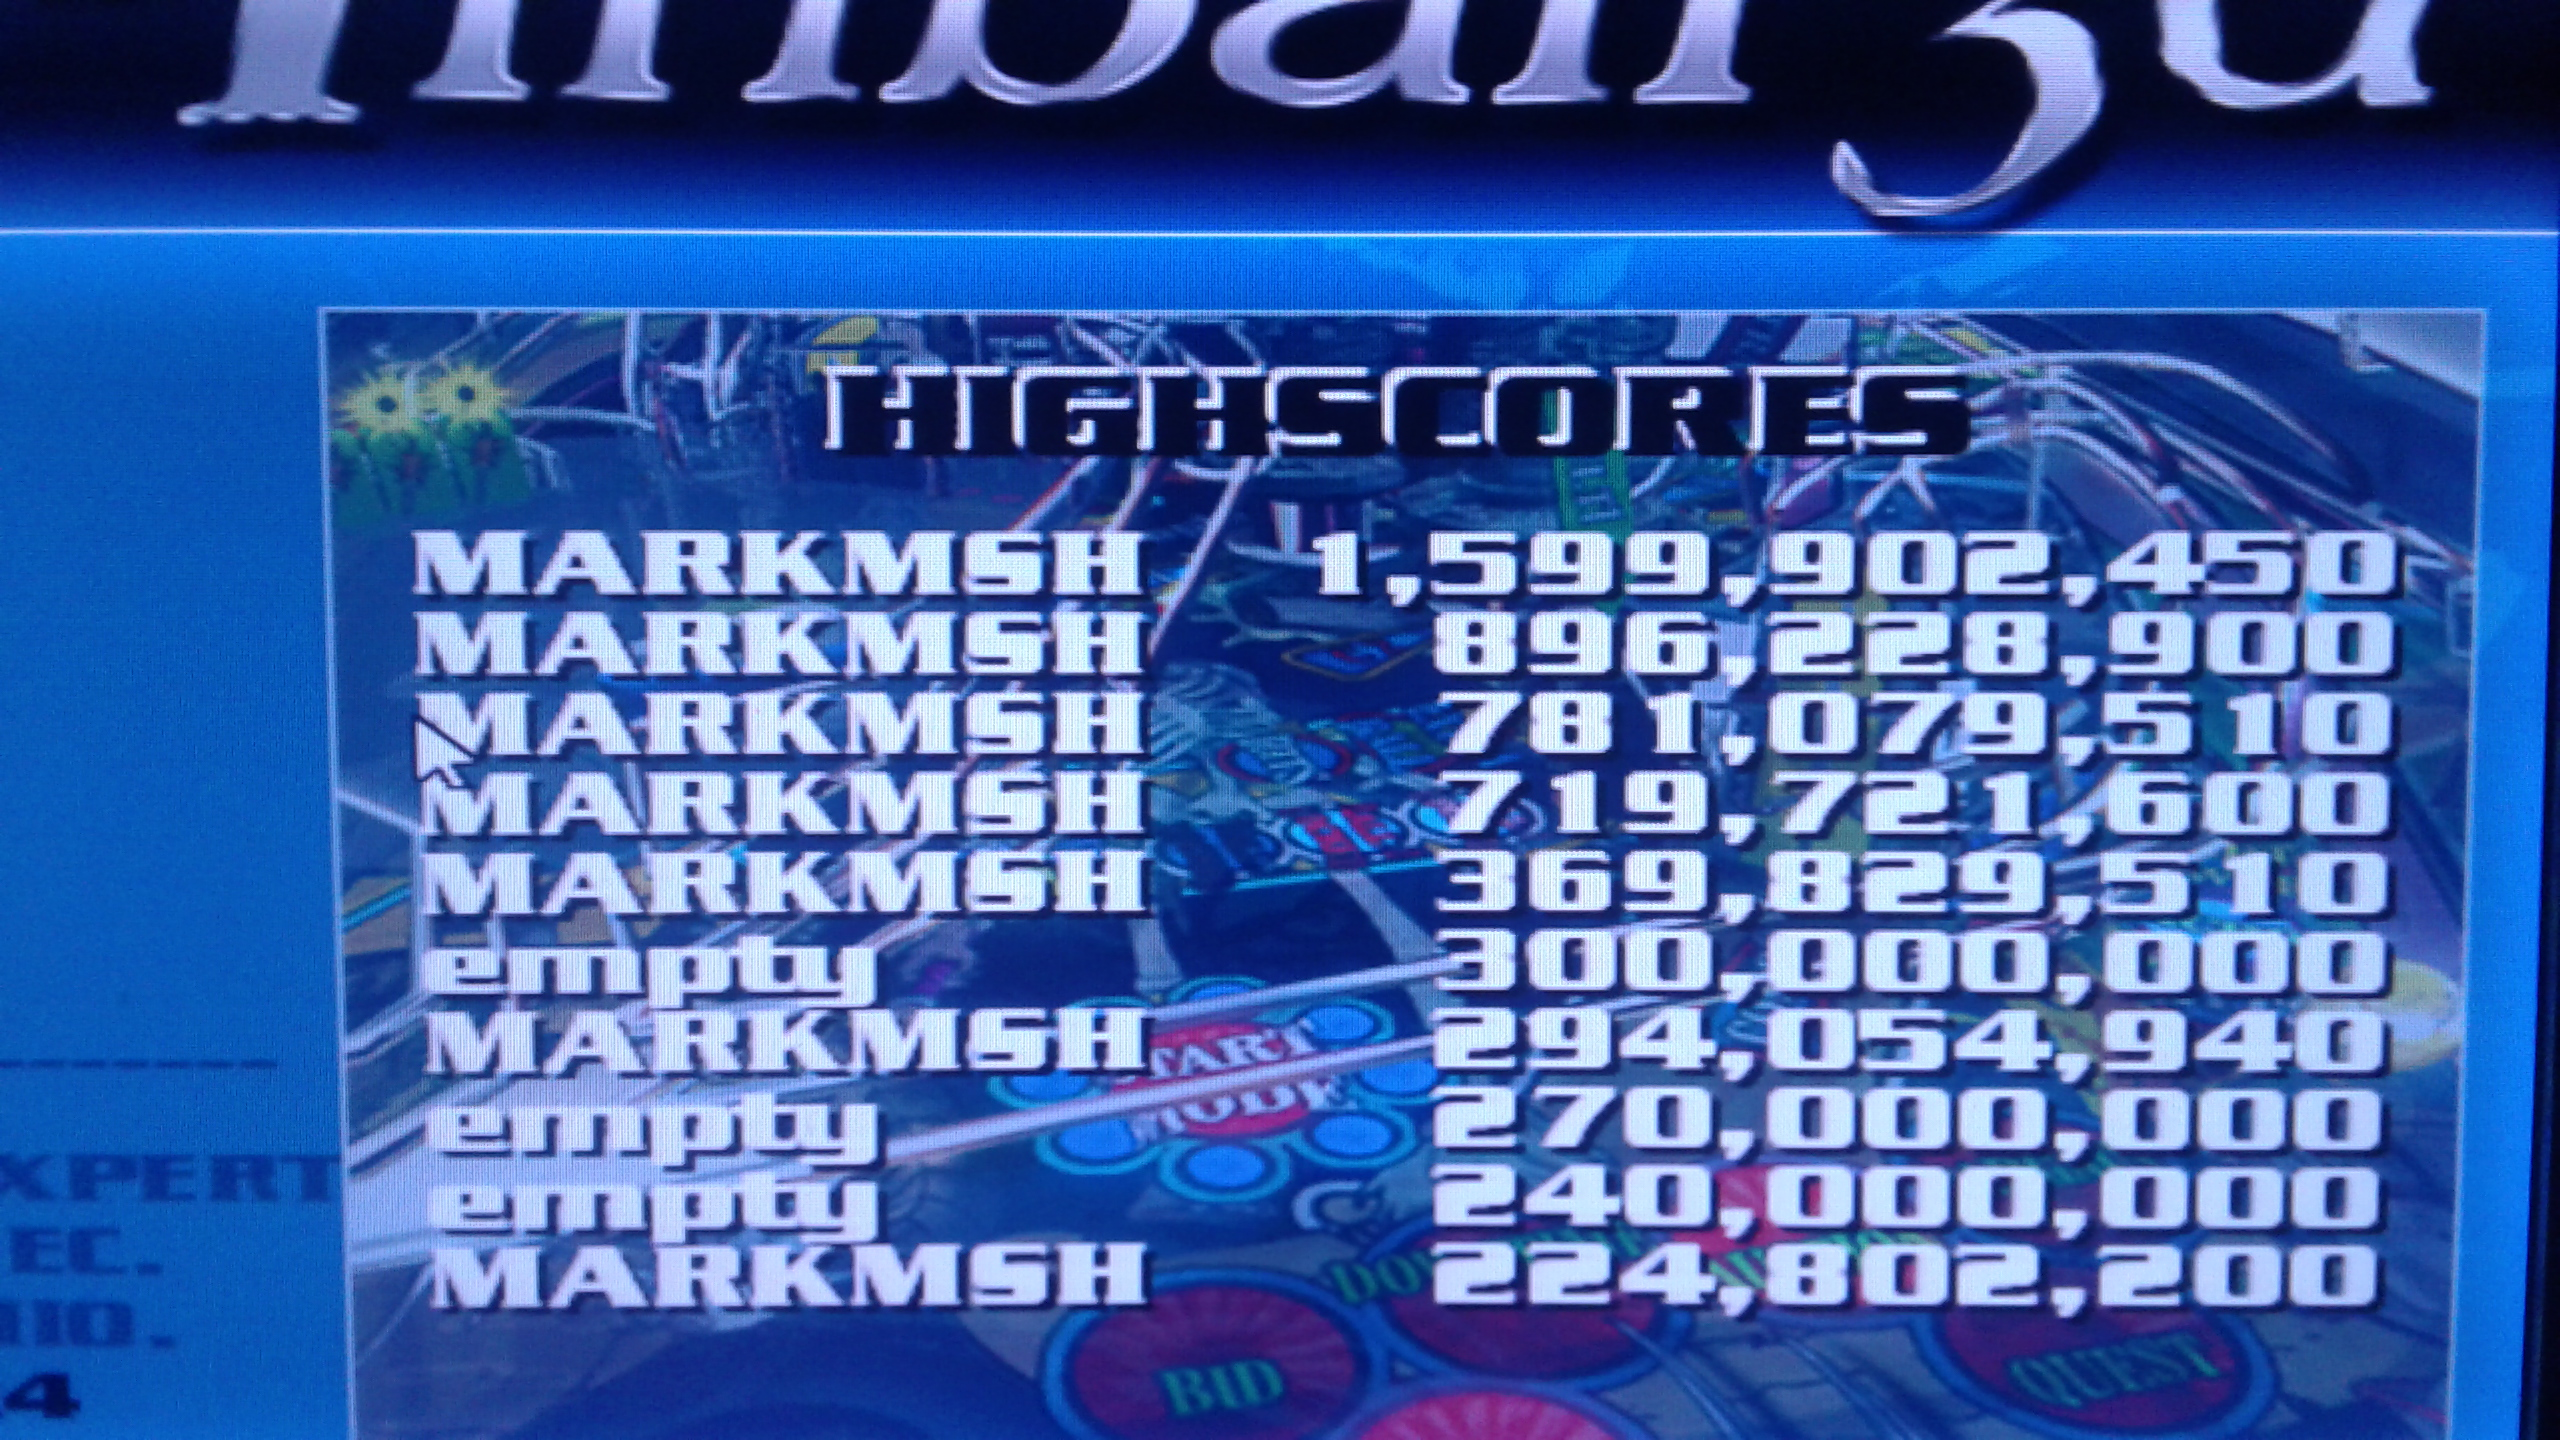 Mark: Dream Pinball 3D: Amber Moon [Easy] (PC Emulated / DOSBox) 1,599,902,450 points on 2019-05-15 23:49:03